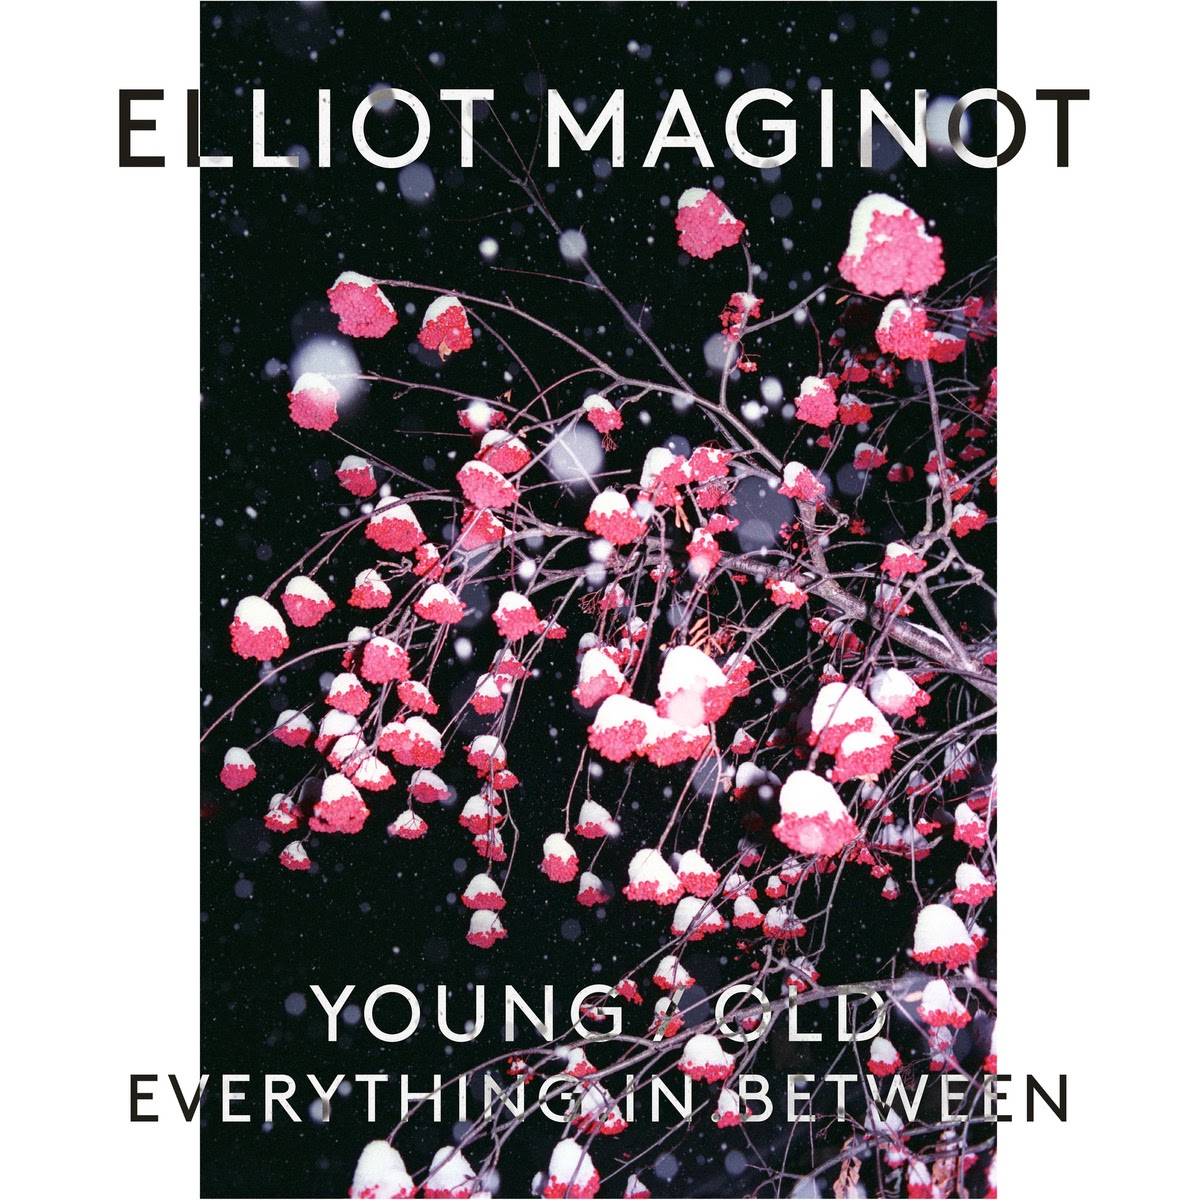 http://www.d4am.net/2015/02/elliot-maginot-youngoldeverythinginbetw.html